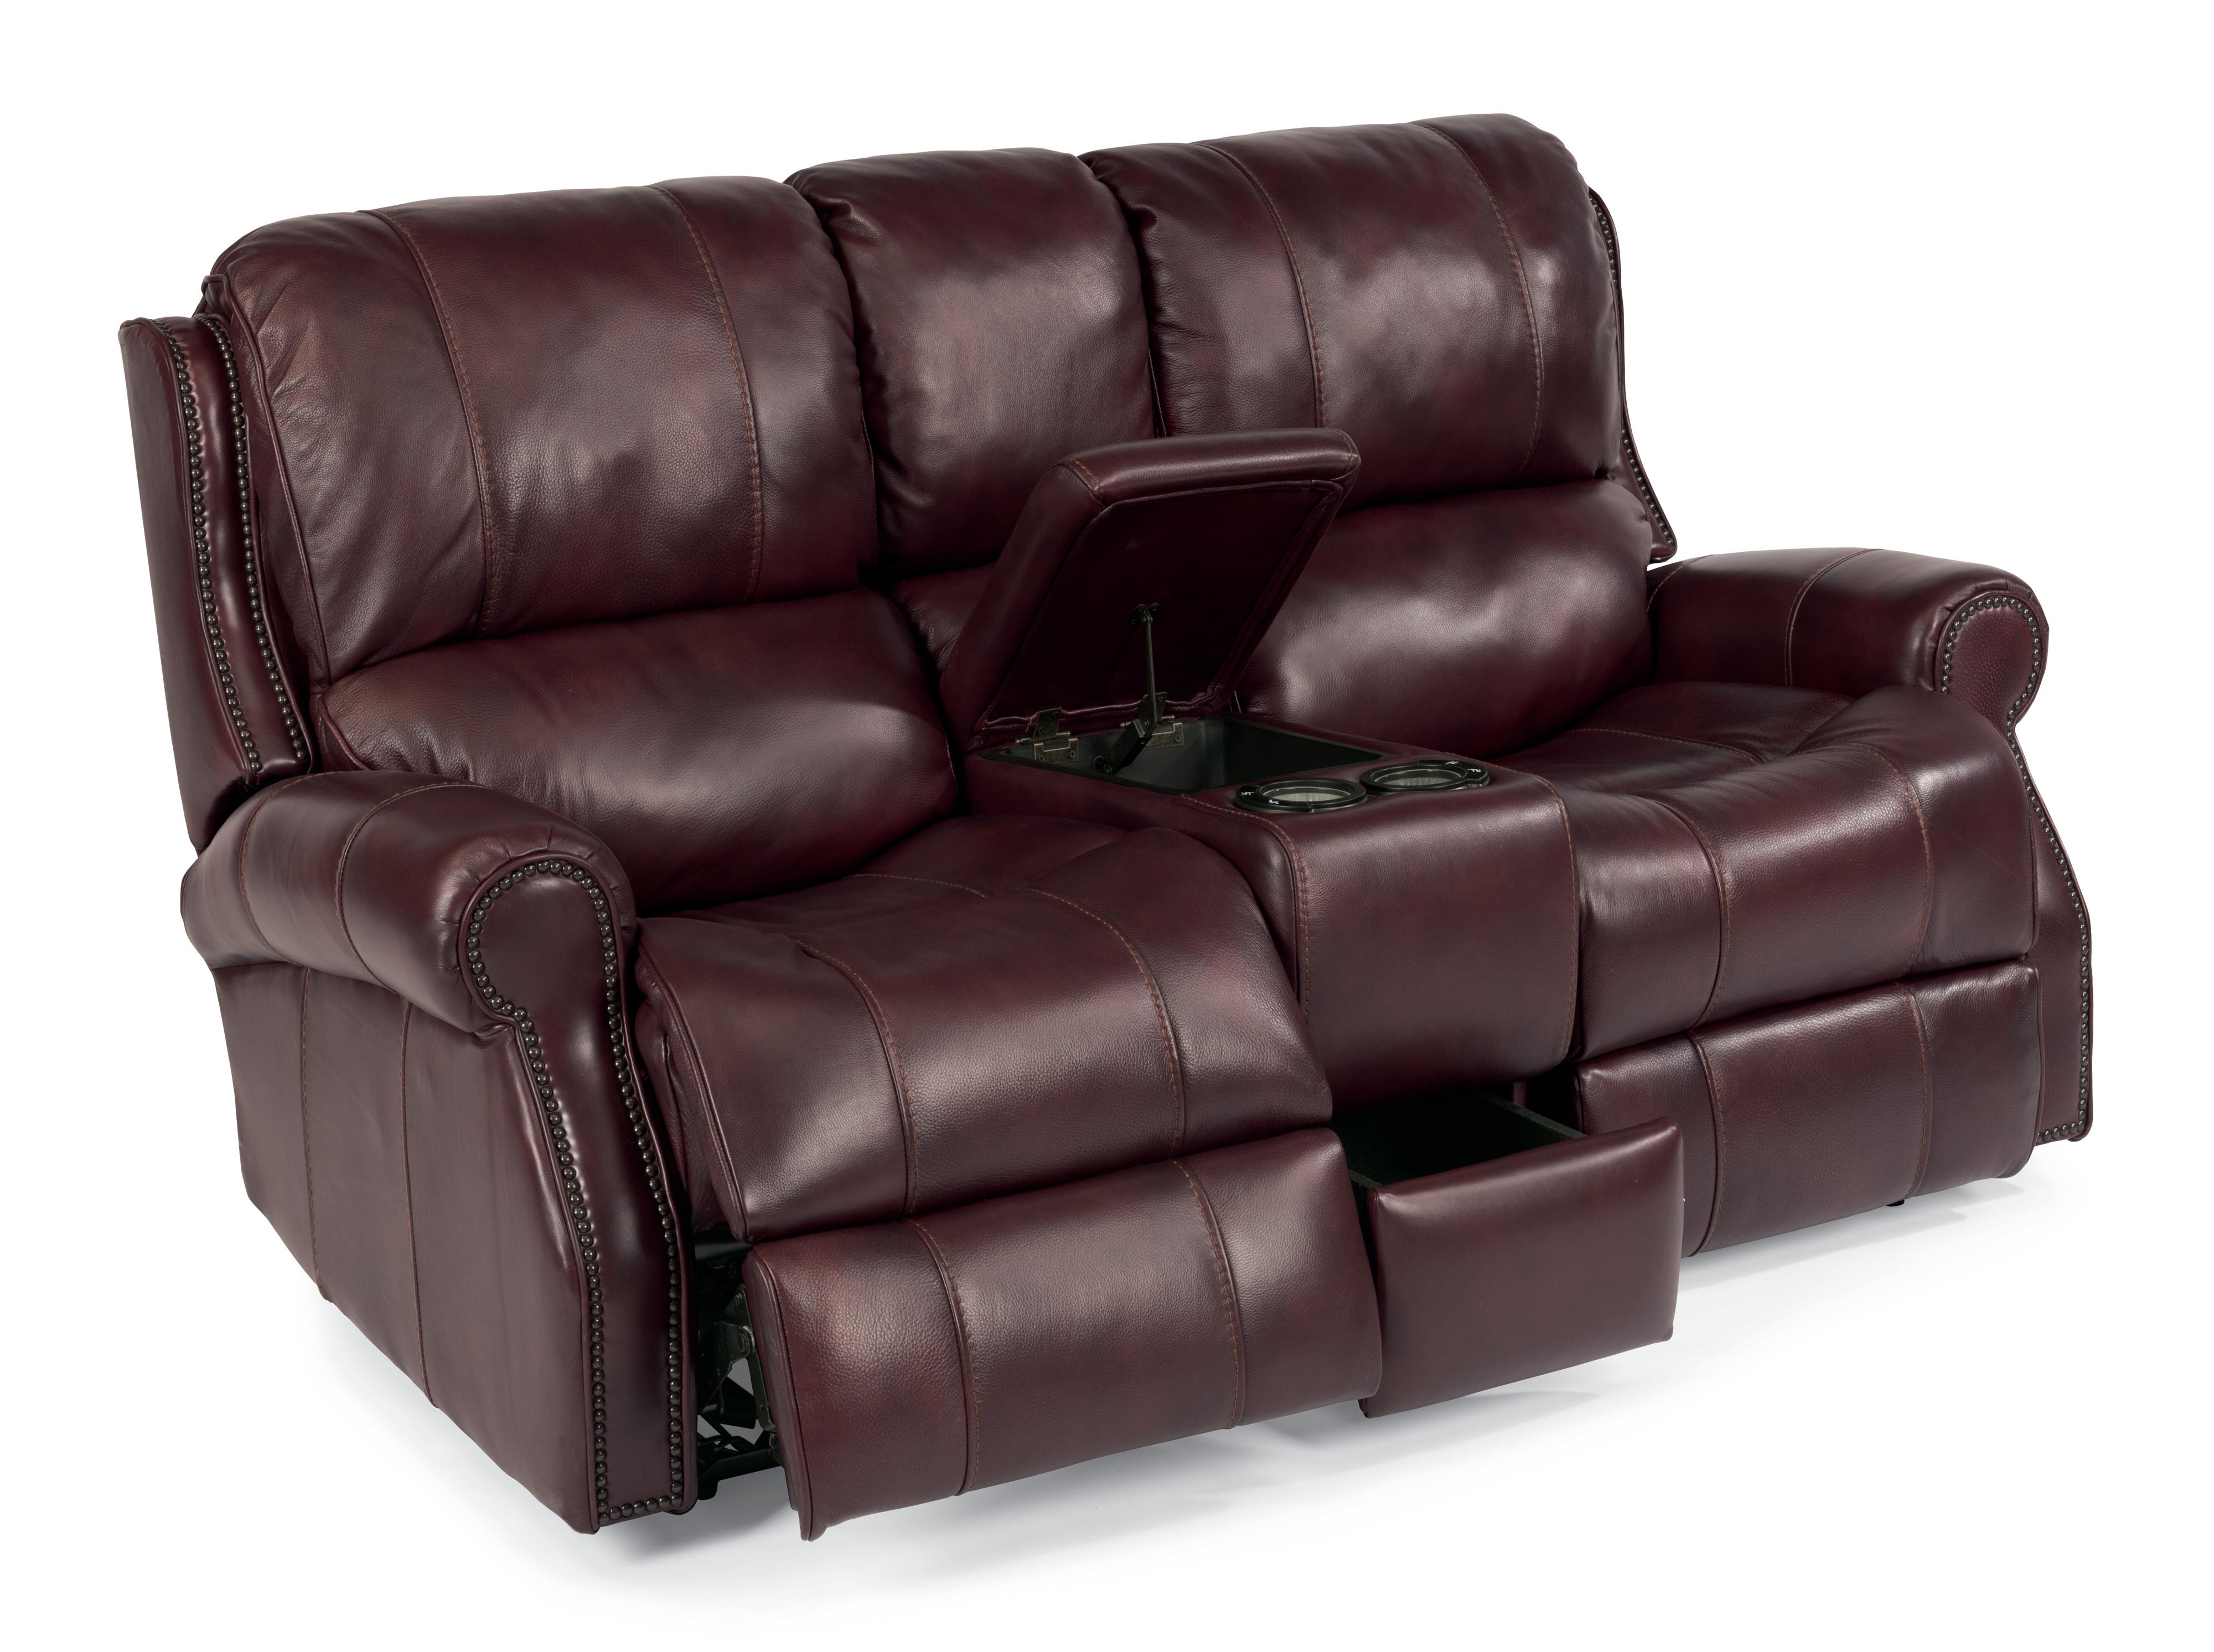 Flexsteel Latitudes-Miles Power Reclining Loveseat with Console - Item Number: 1533-604P